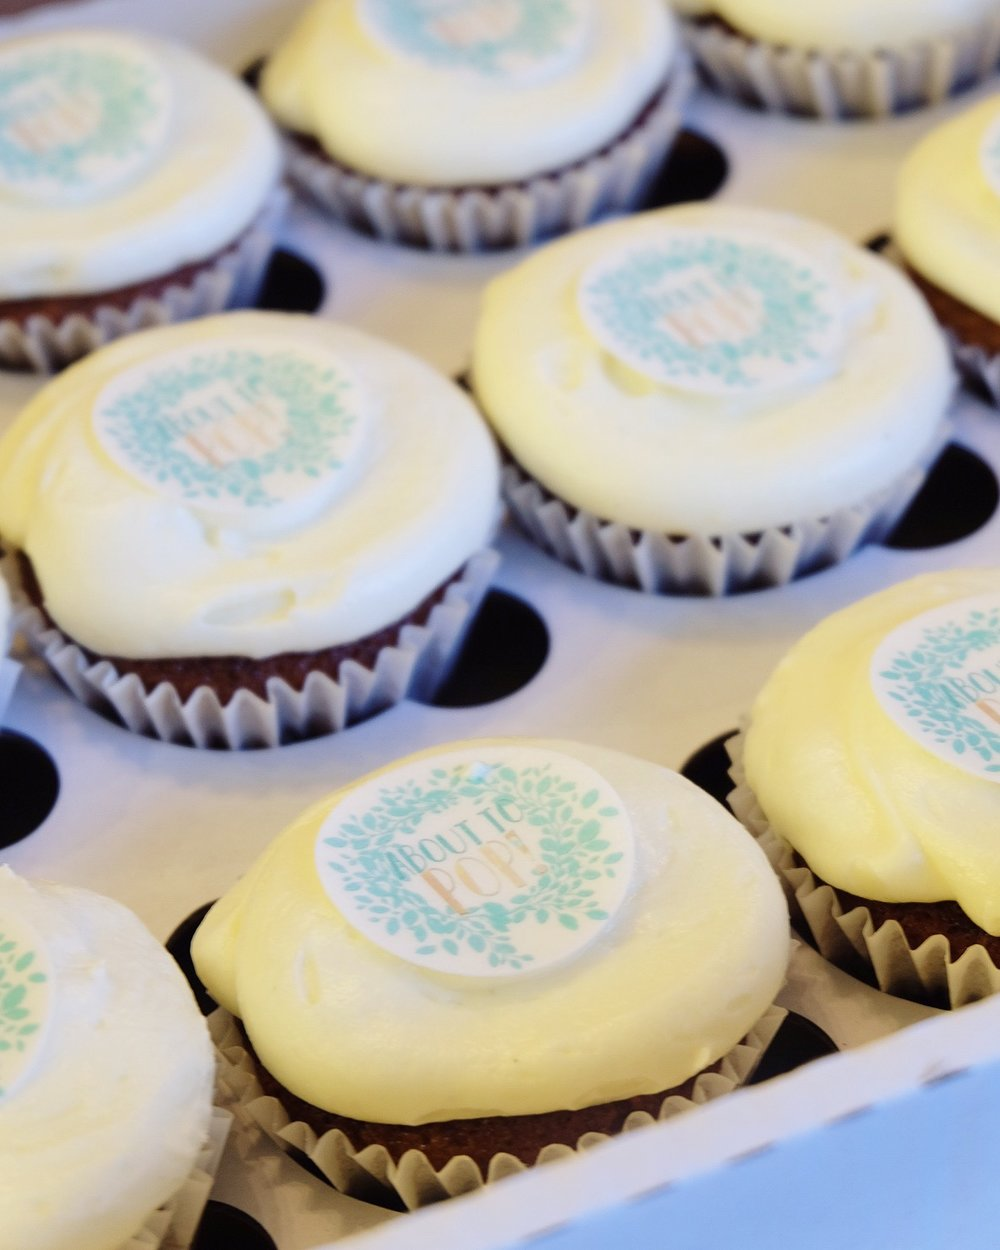 bespoke 'about to pop' baby shower cupcakes